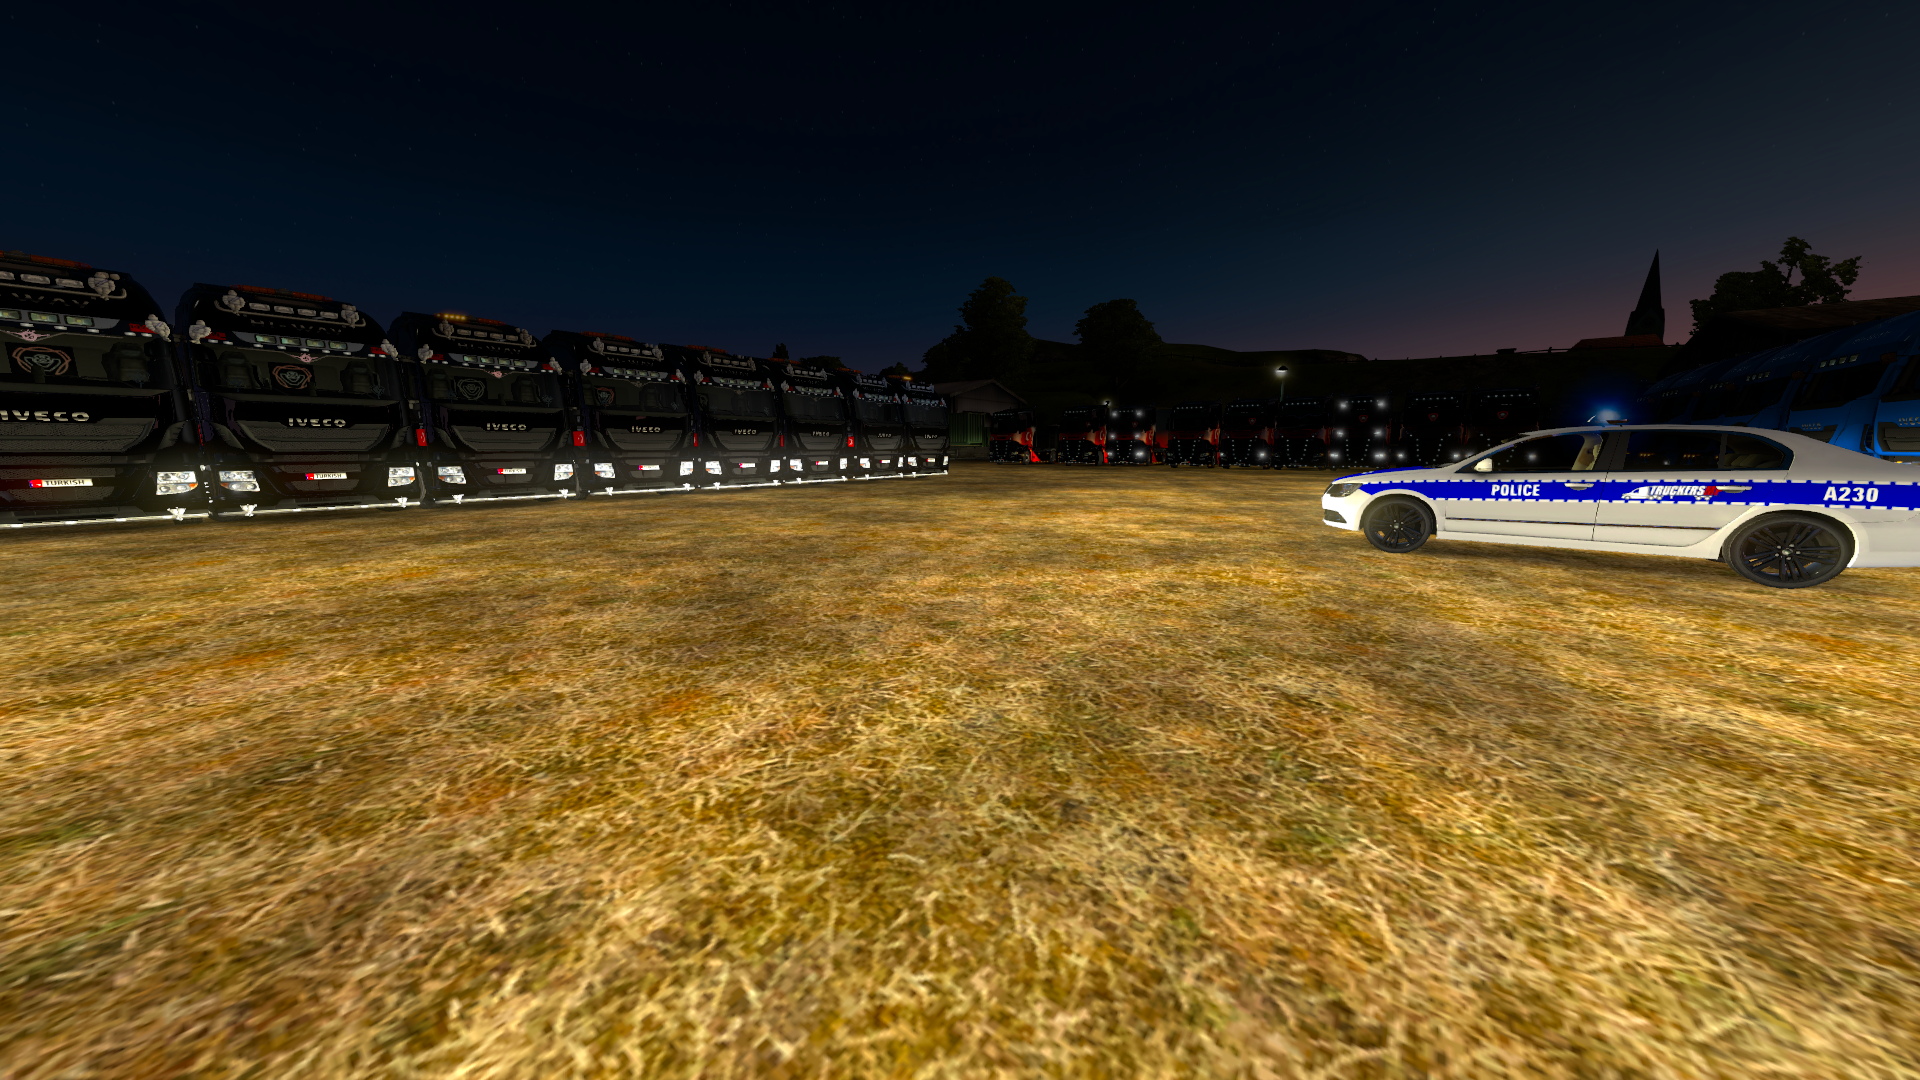 ets2_20190427_214437_00.png